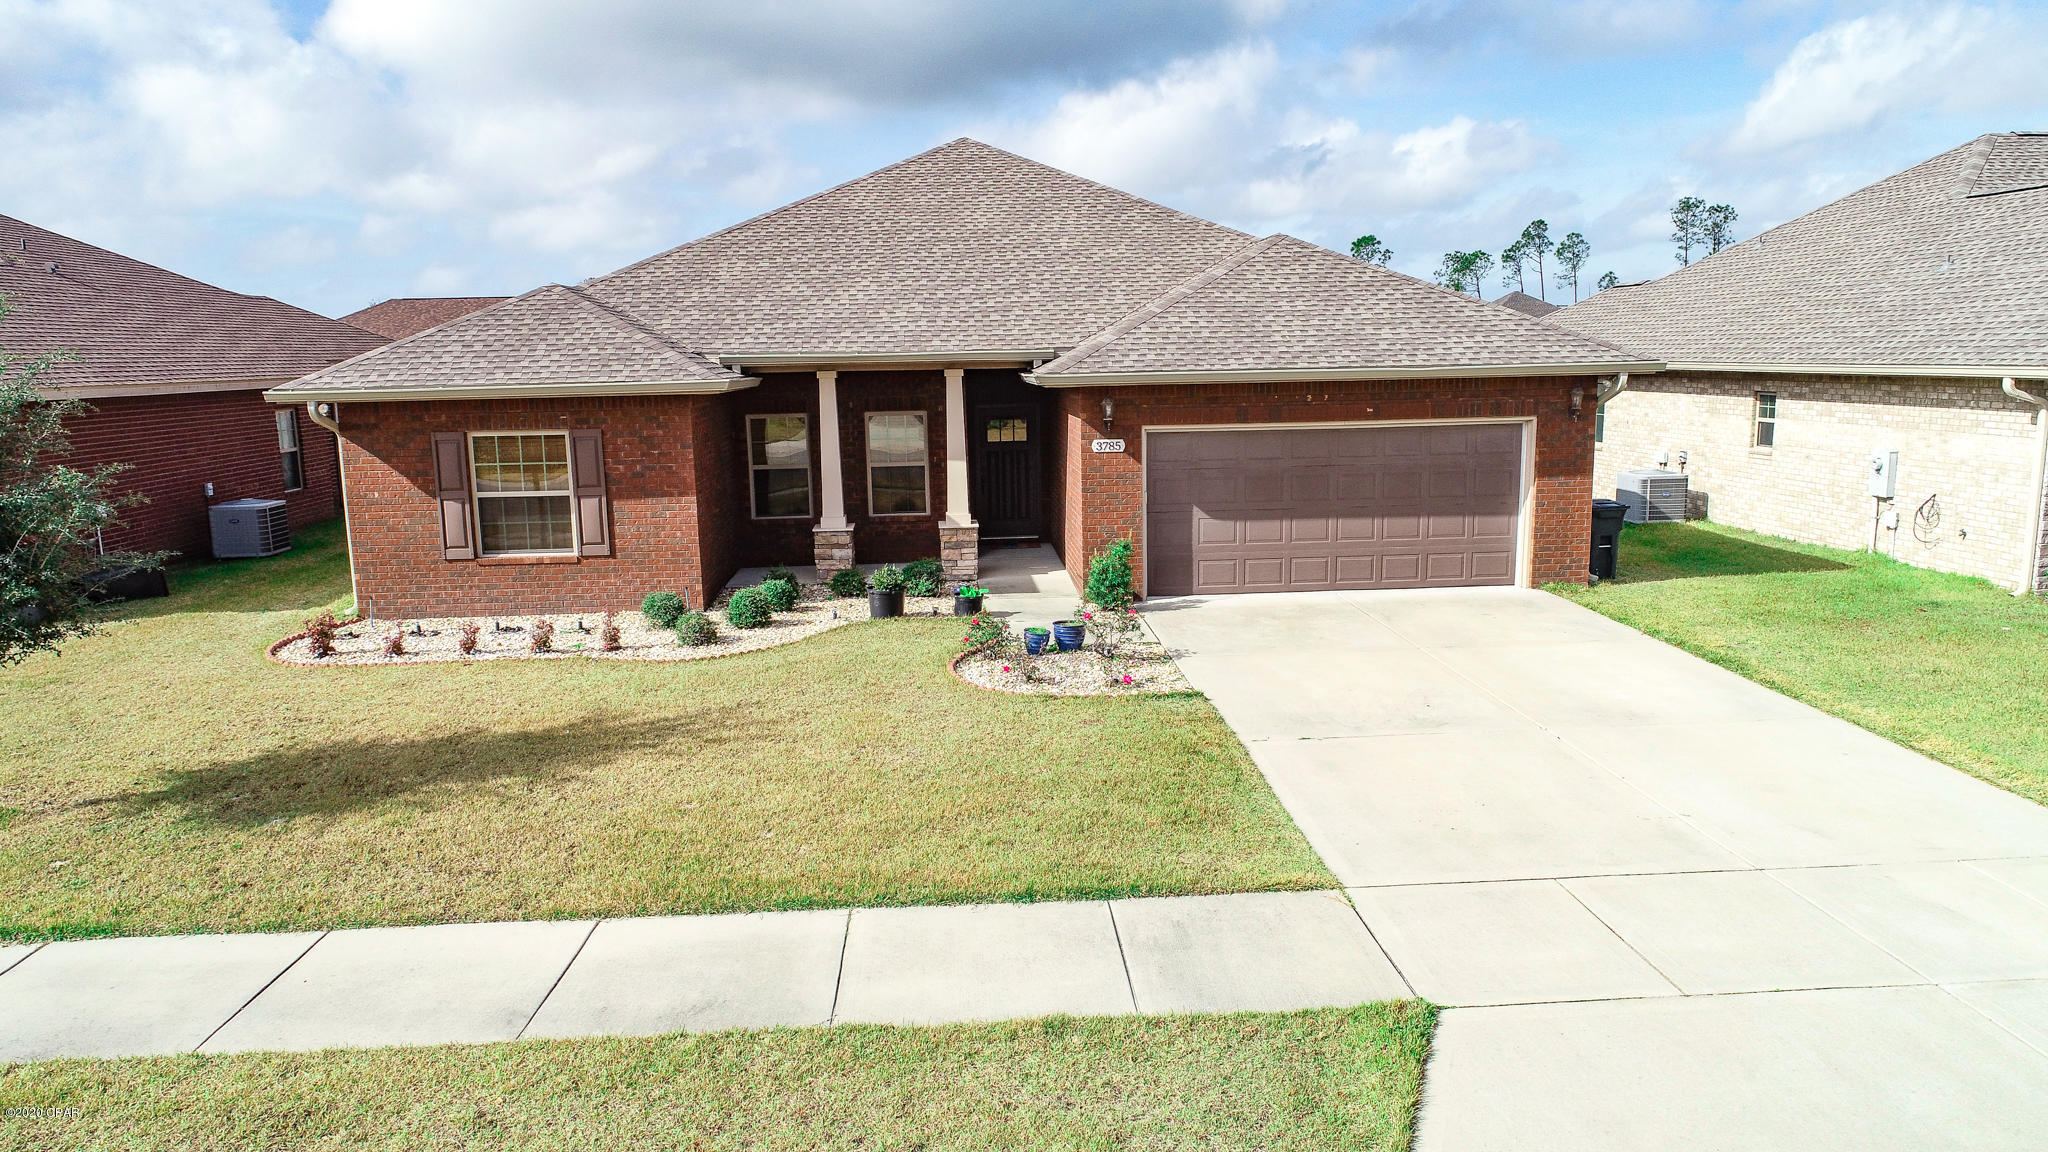 Photo of 3785 Cedar Park Lane Panama City FL 32404